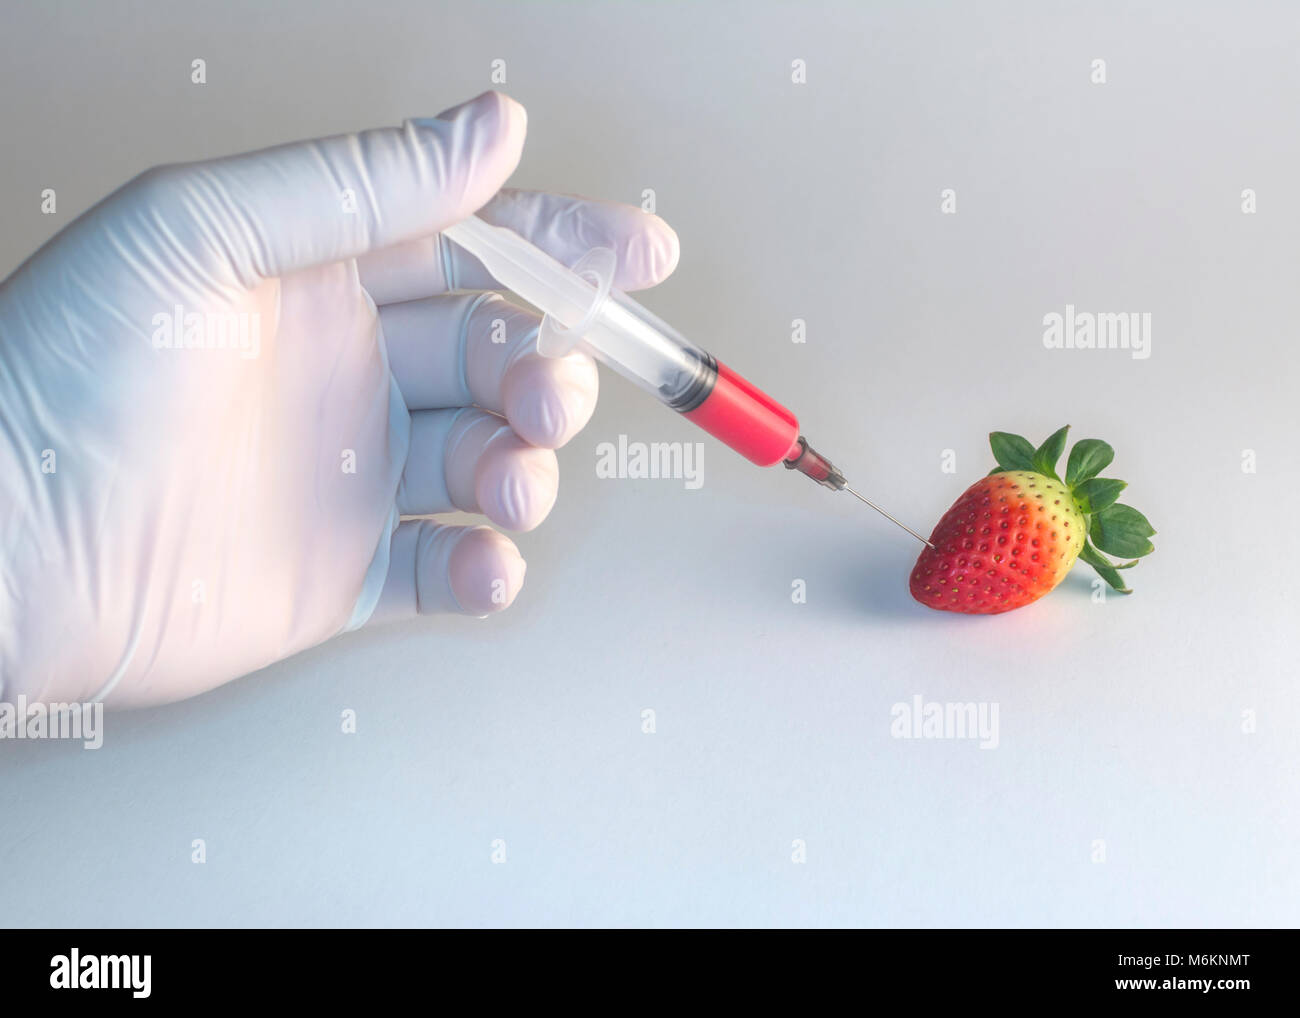 Fruits Genetic manipulation - Stock Image